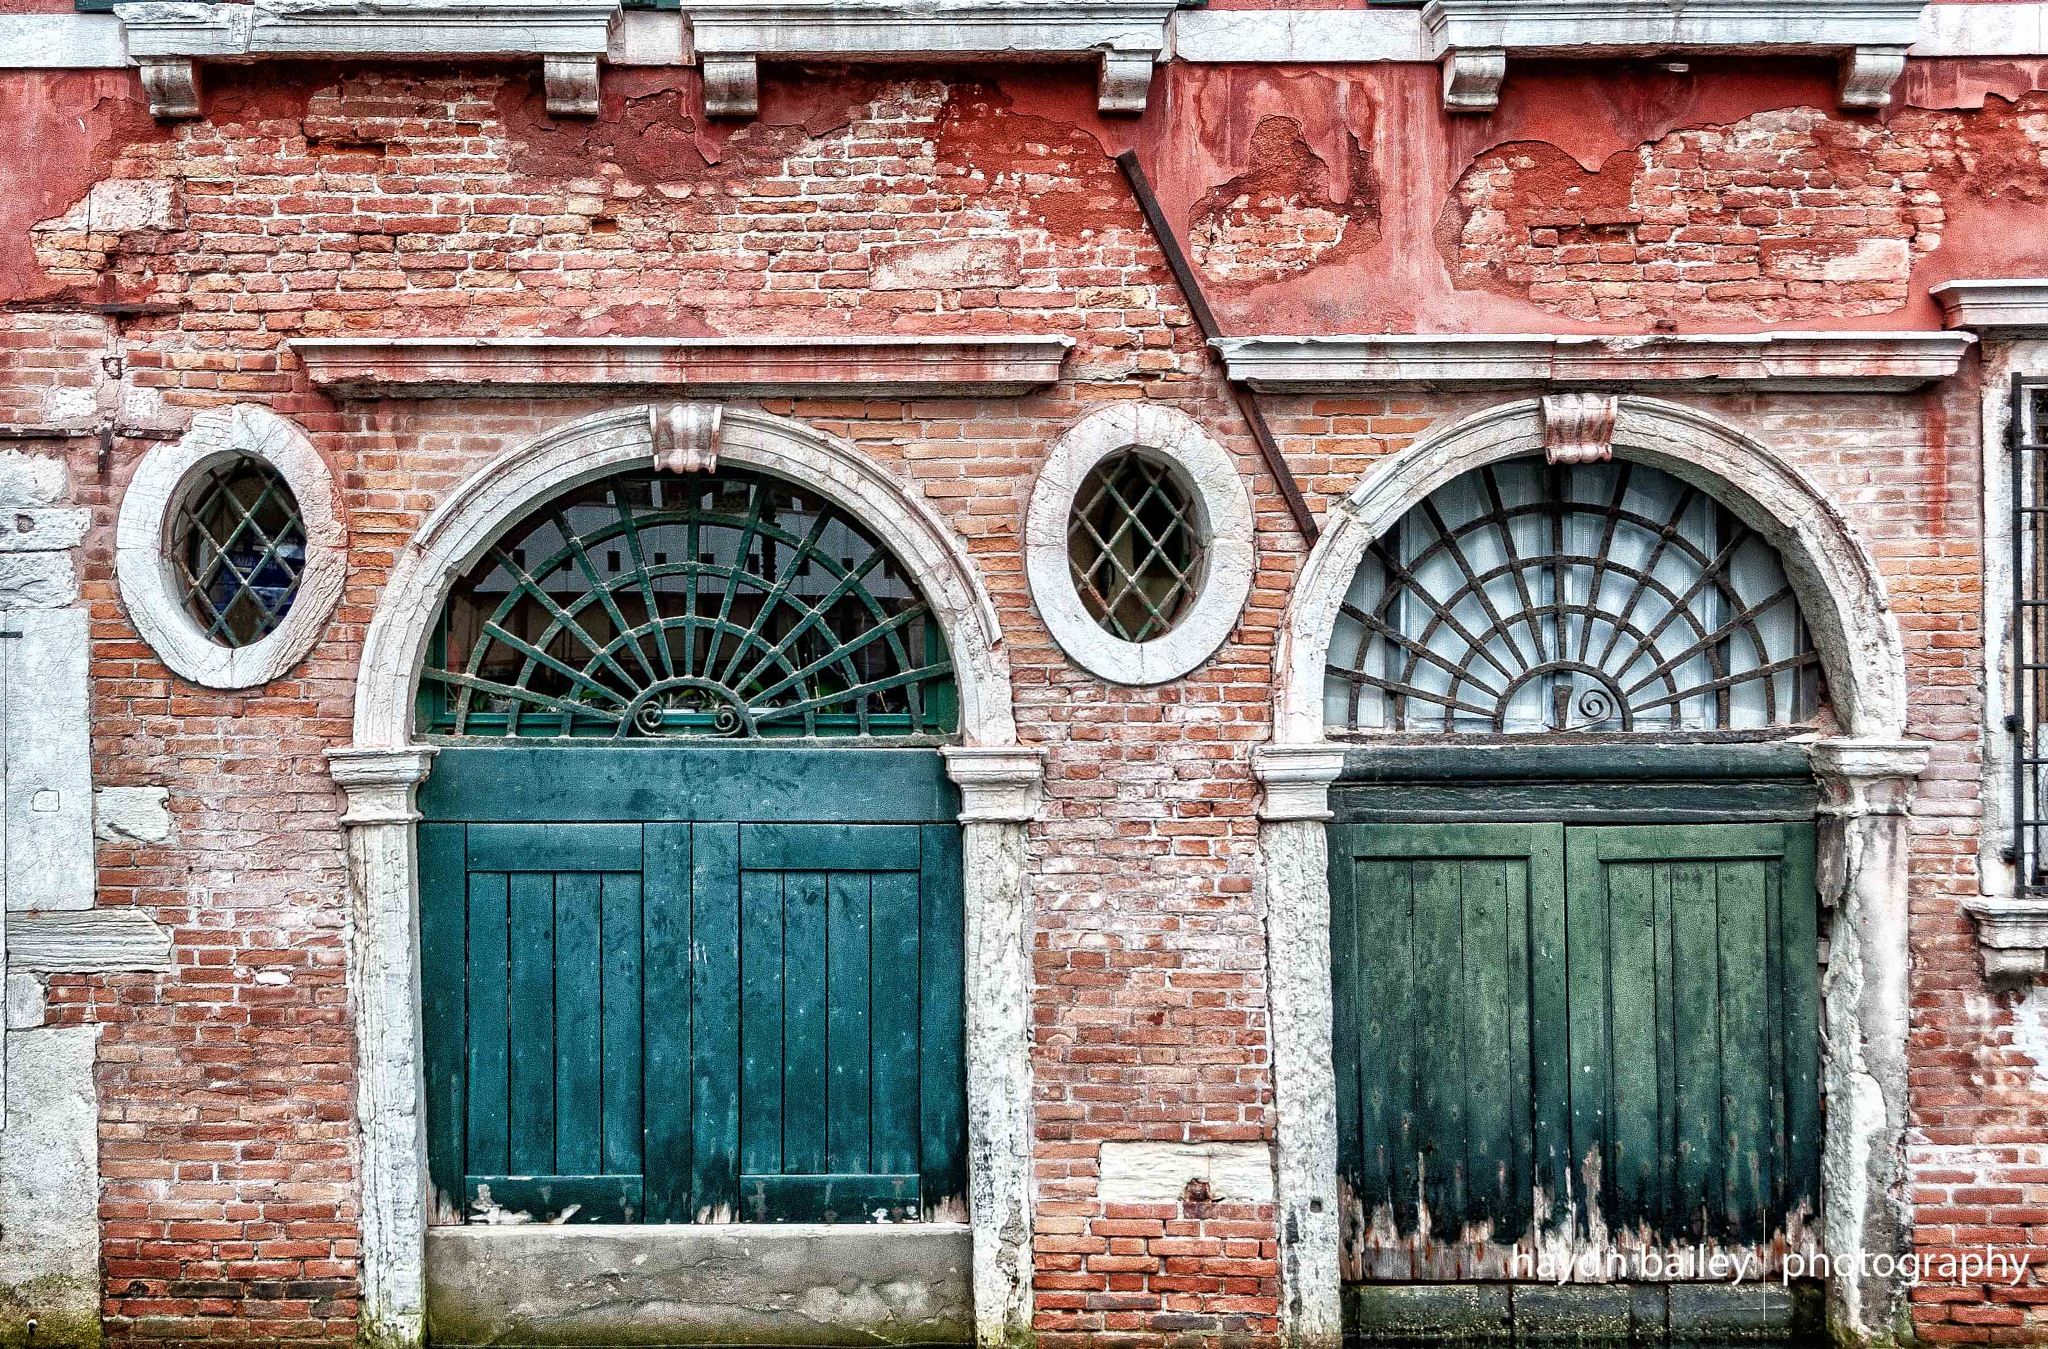 Canal-side doors by Haydn Bailey